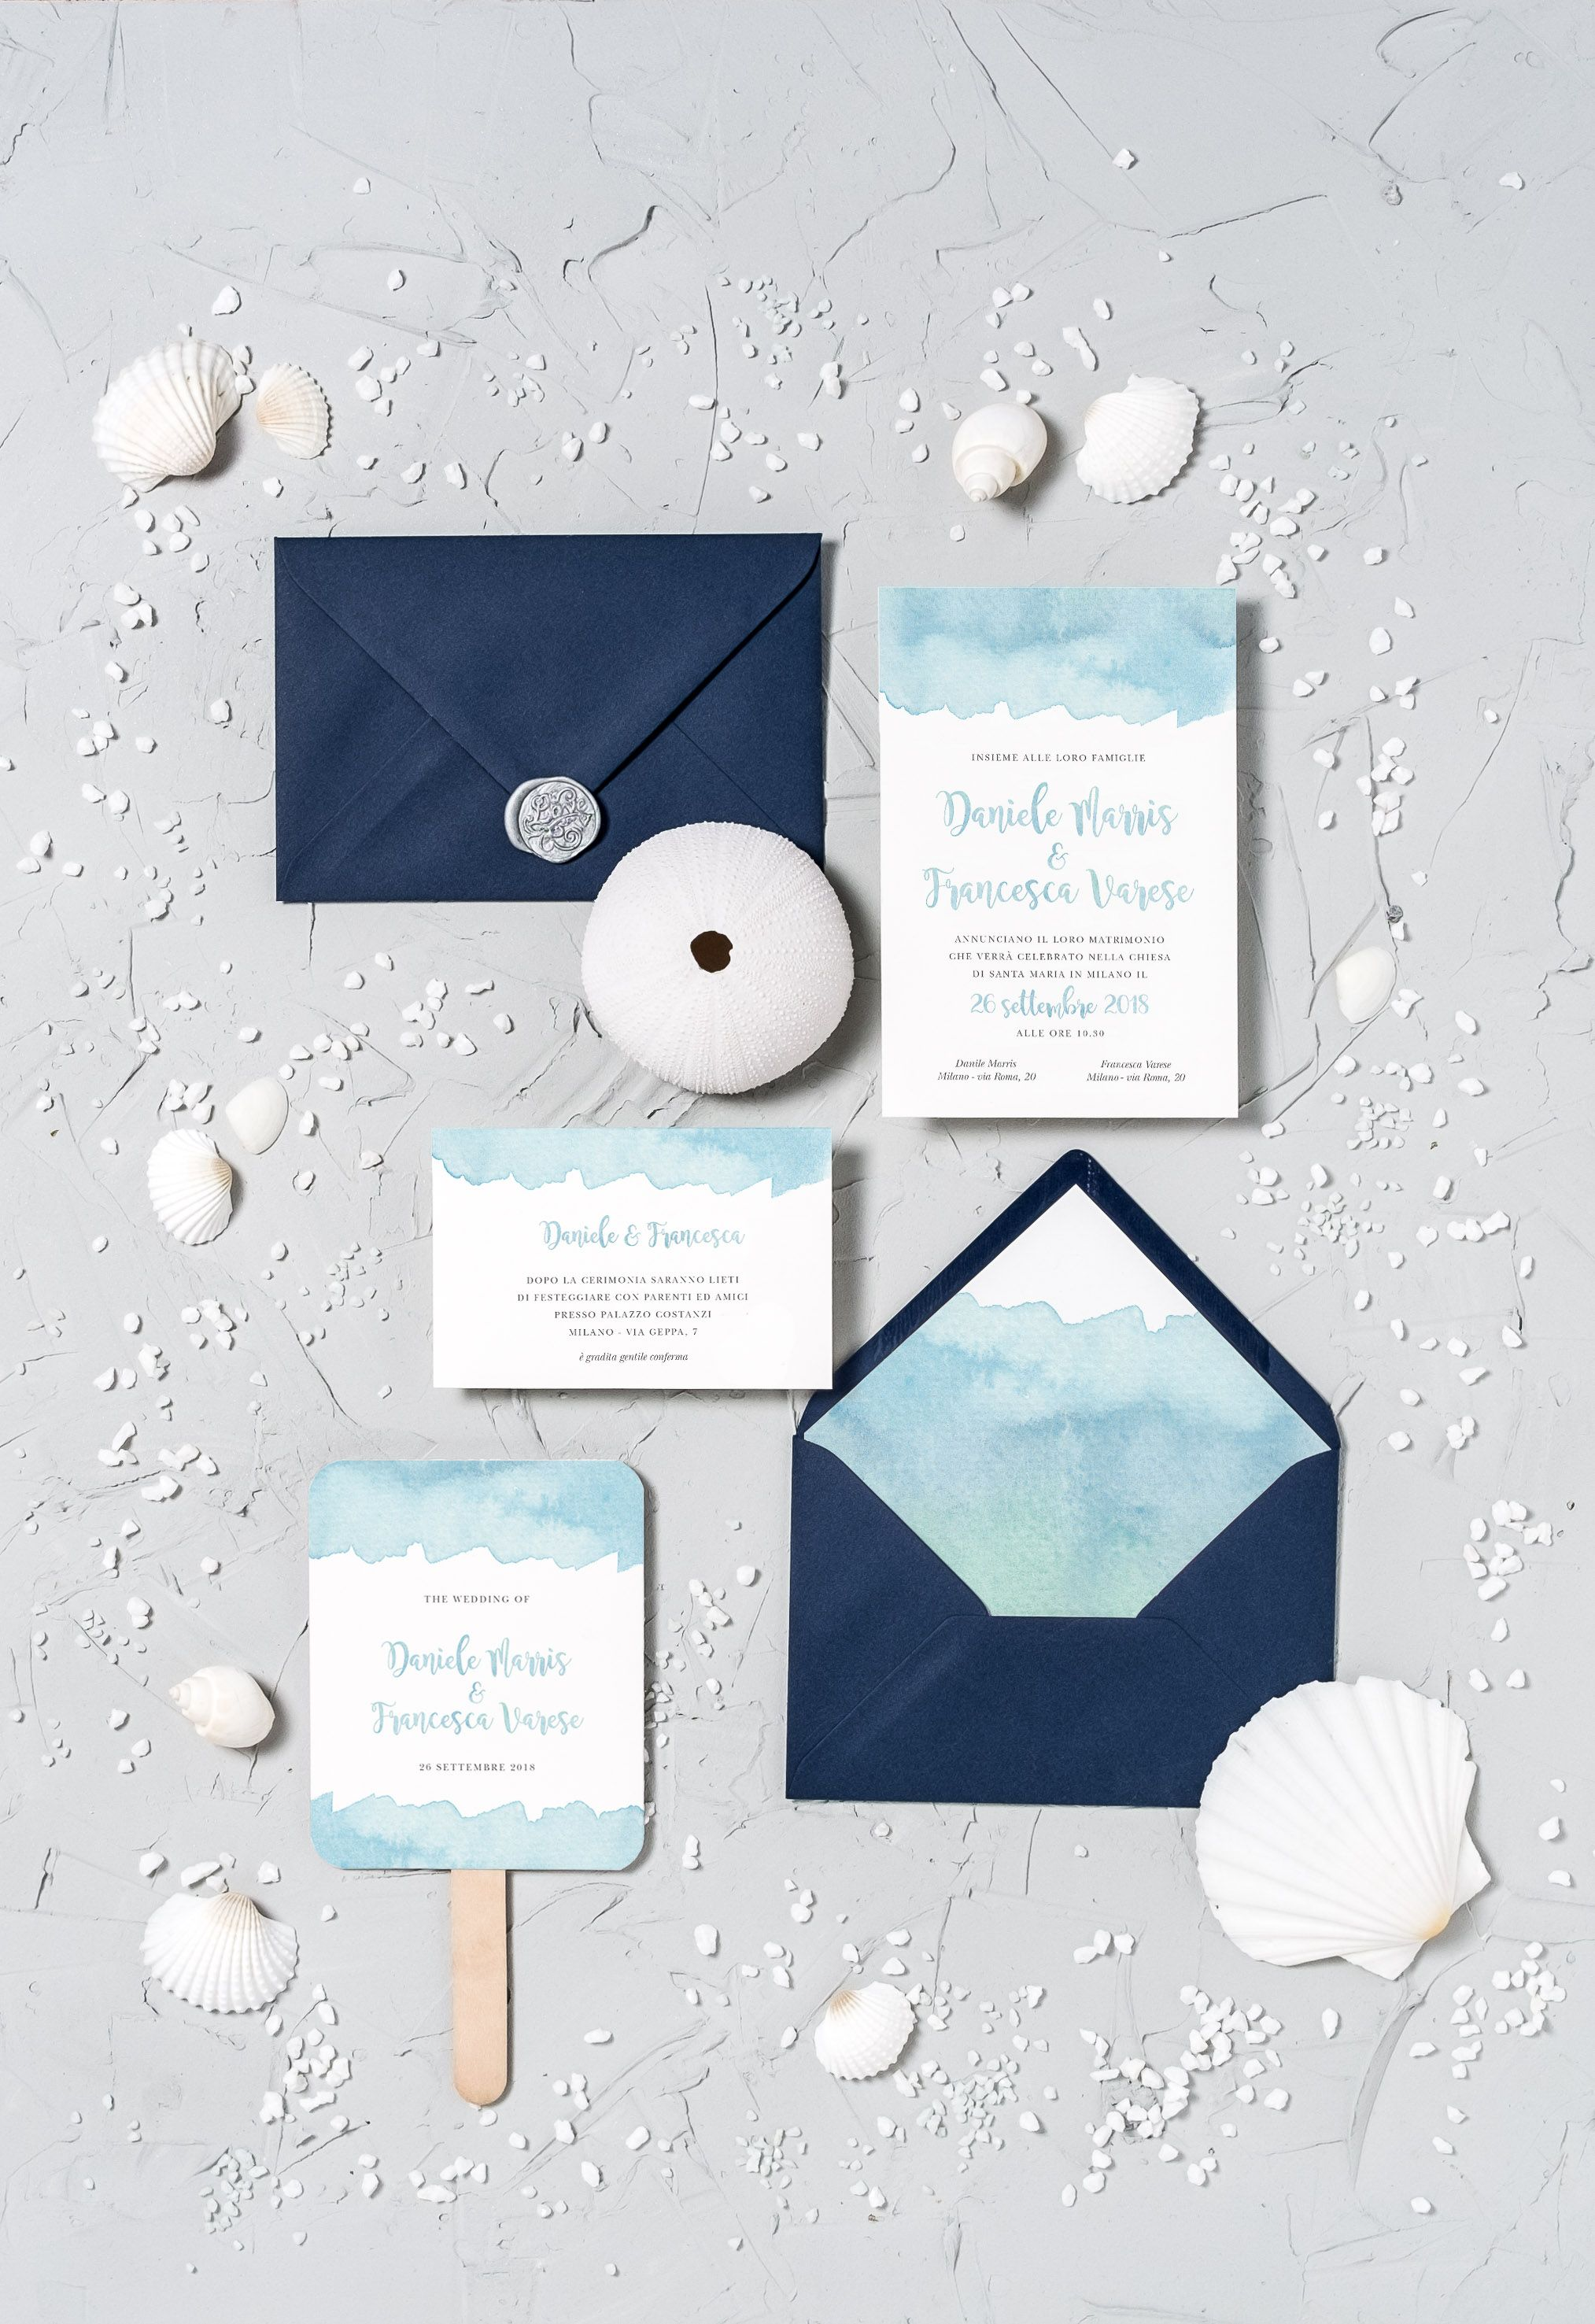 Matrimonio Tema Roma : Beach wedding stationery sea wedding matrimonio tema mare sea